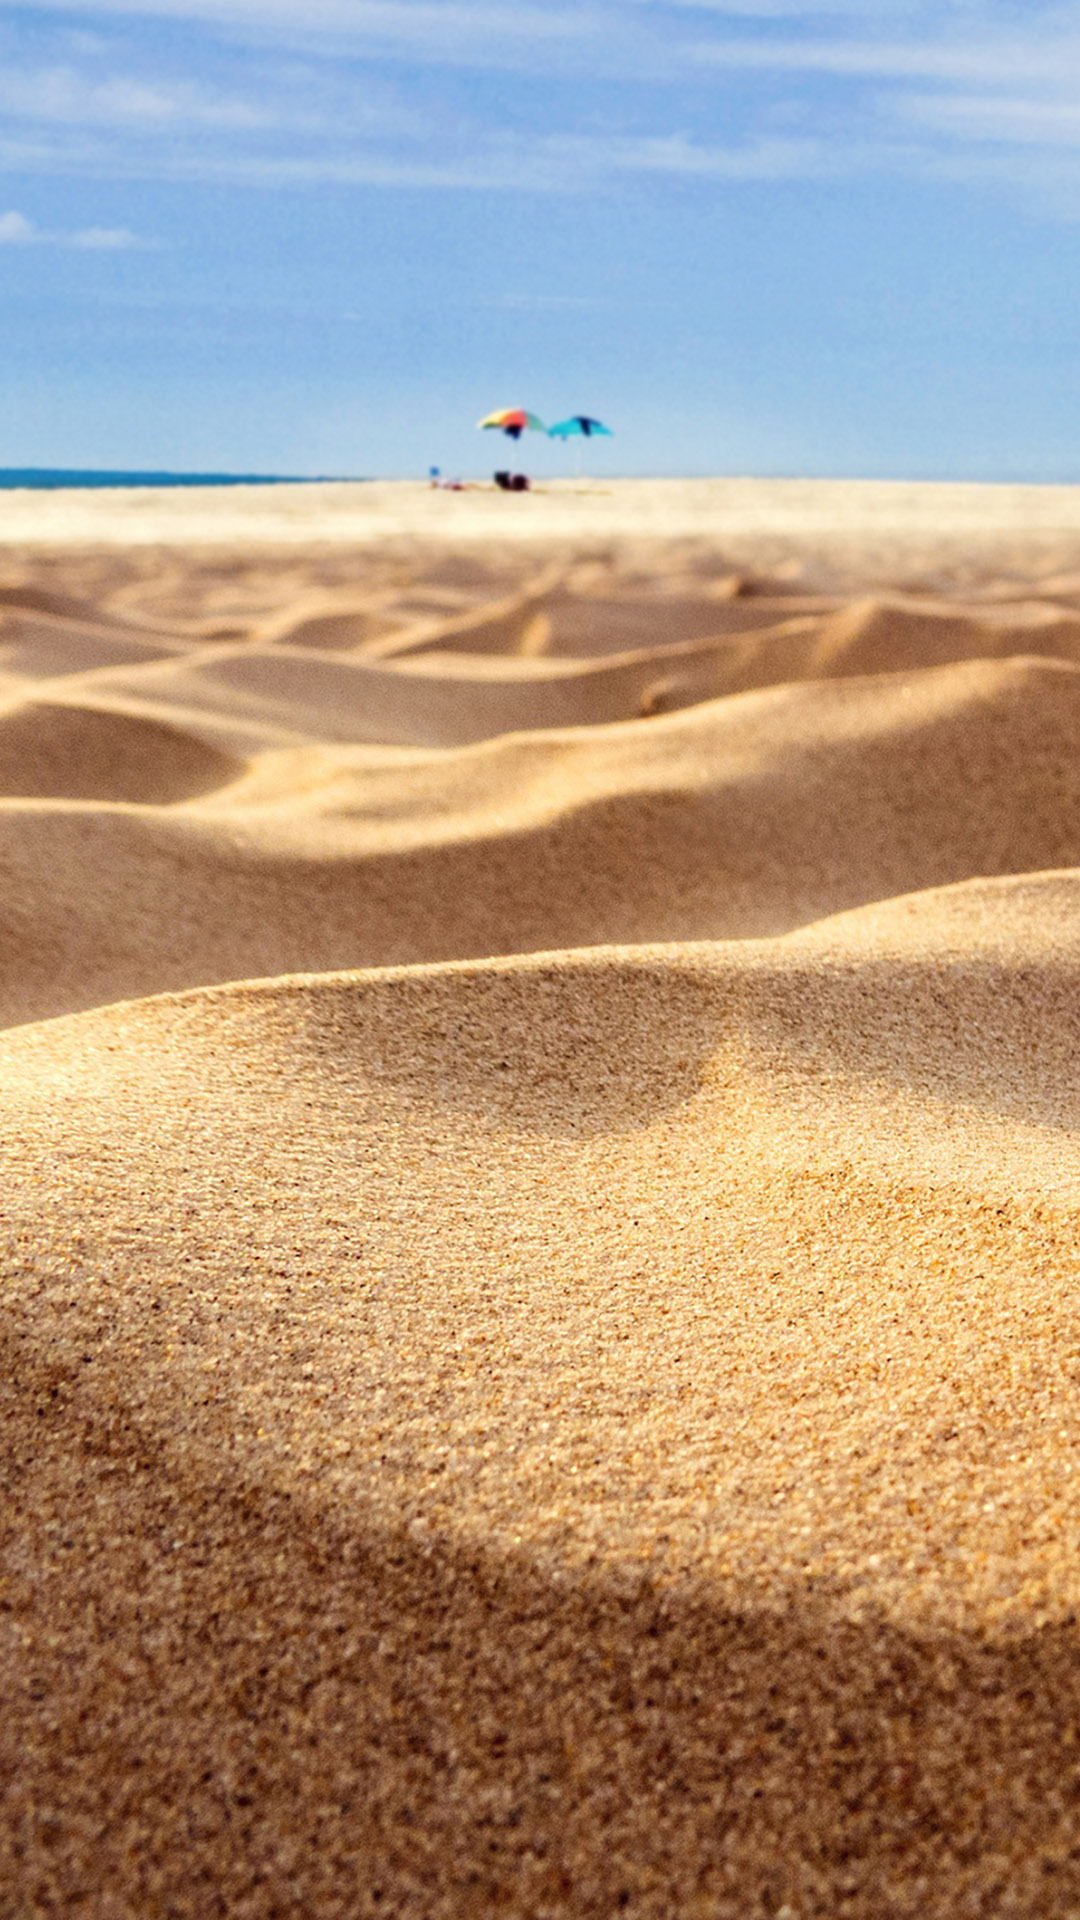 Beach-Sand-Closeup-Holiday-iPhone-6-Plus-HD-Wallpaper.